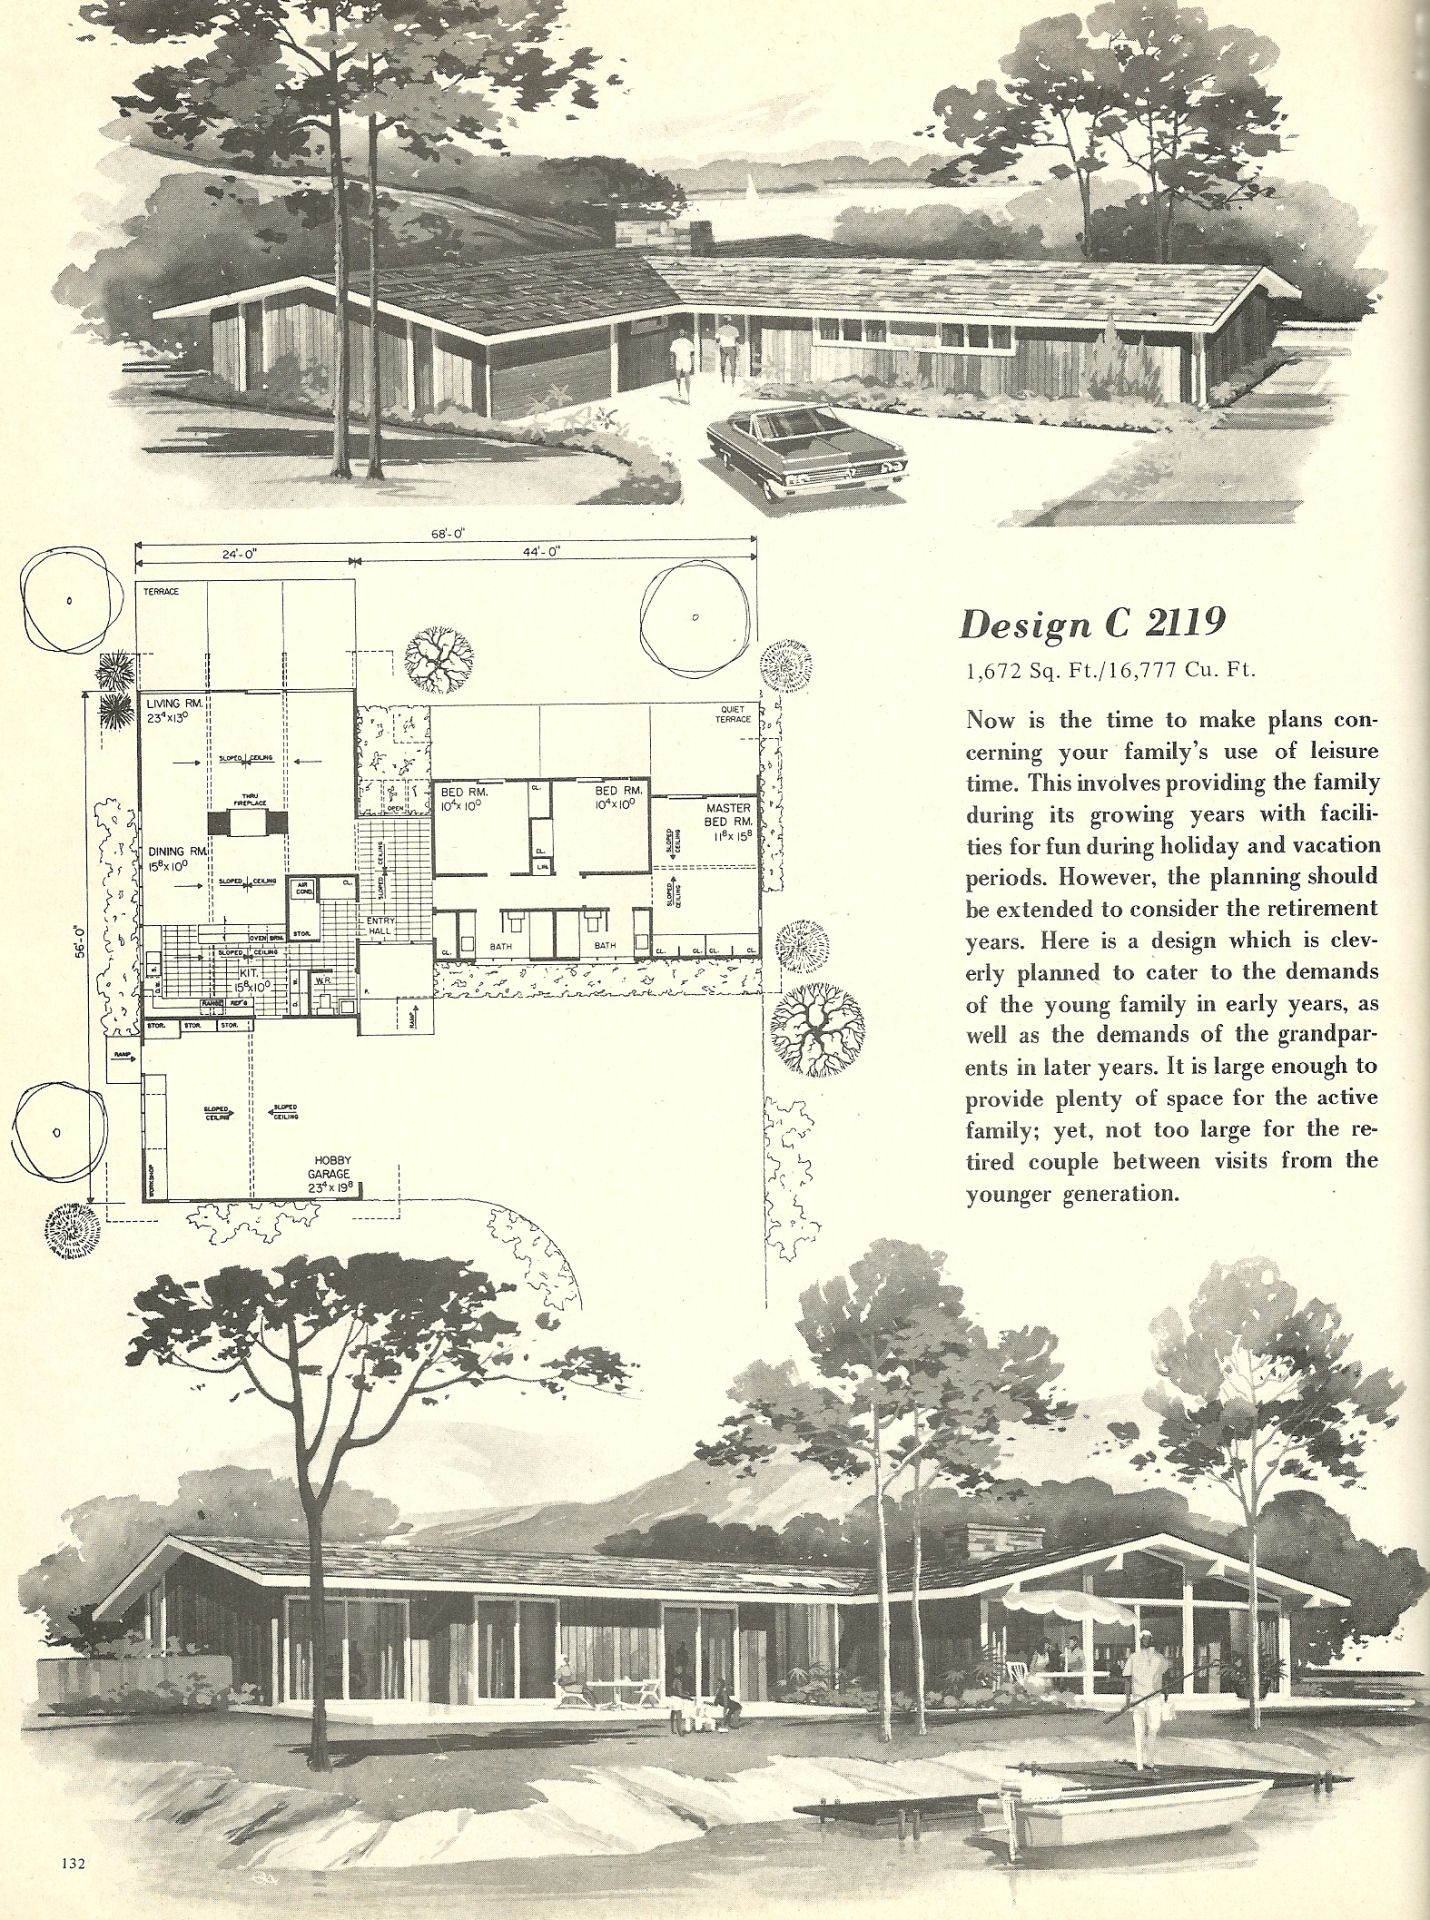 Vintage Farmhouse Plans vintage house plans, 1960s houses, mid century homes | modern